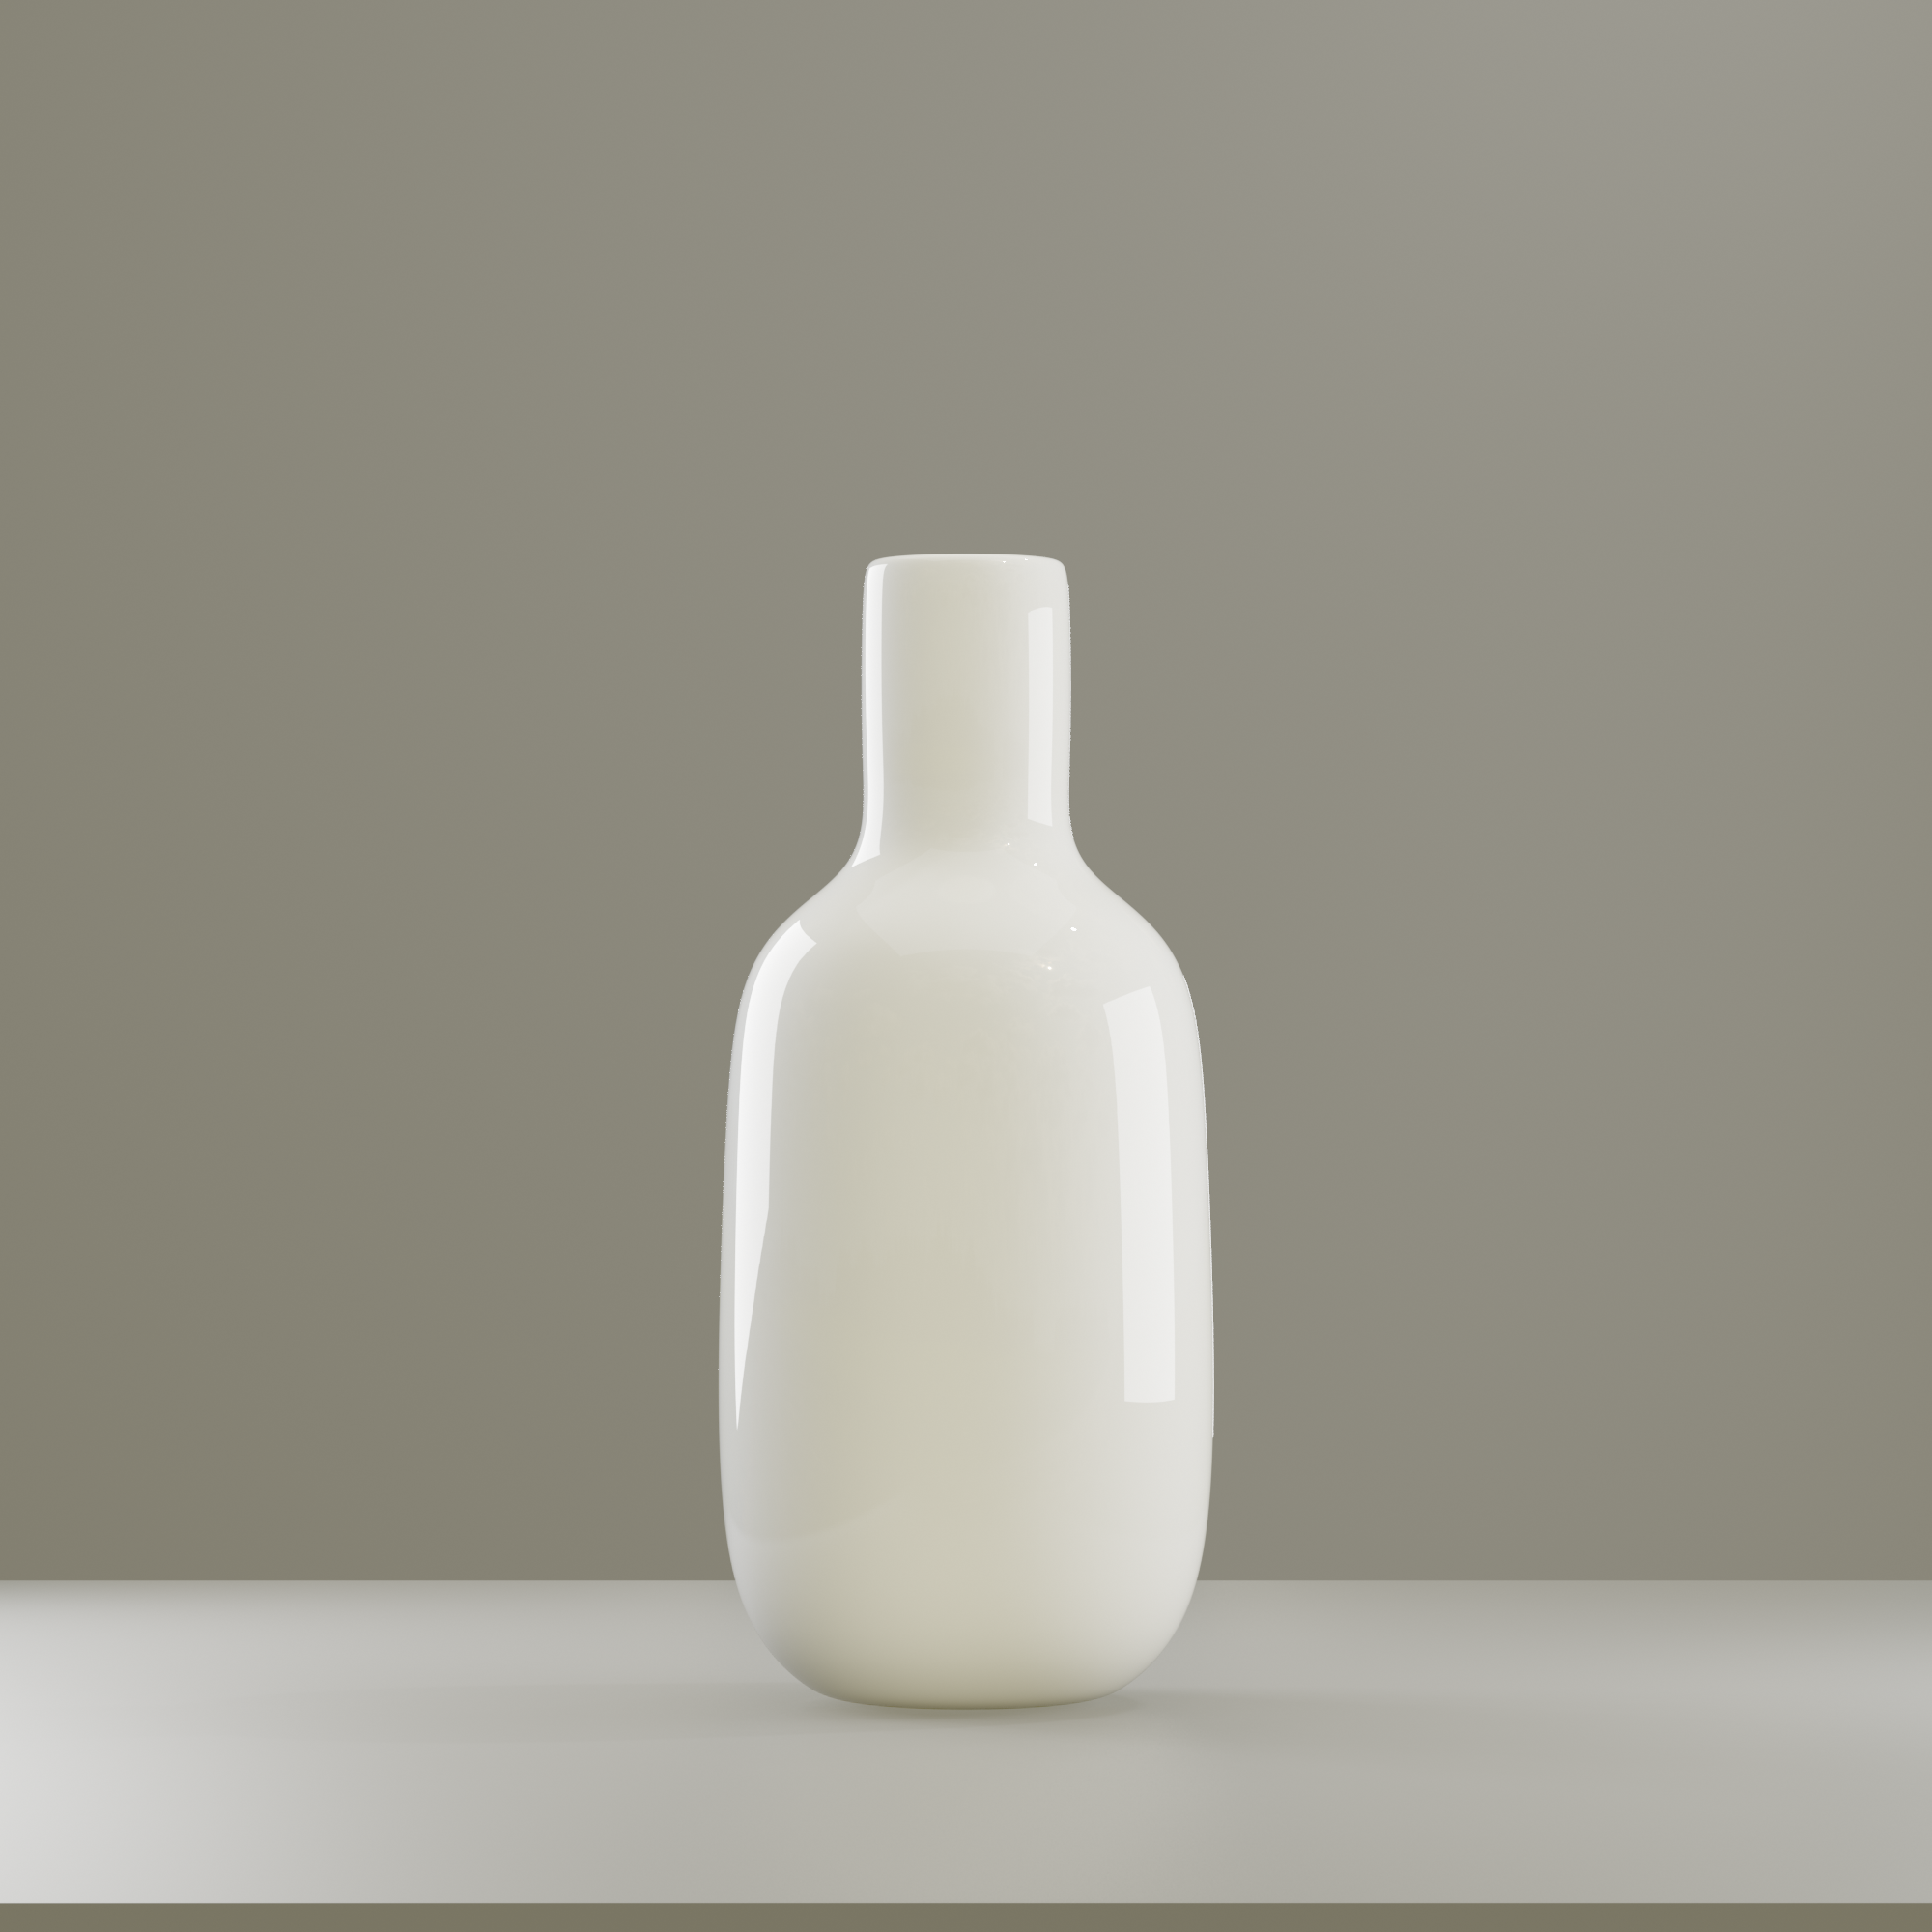 Pack of vases preview image 6